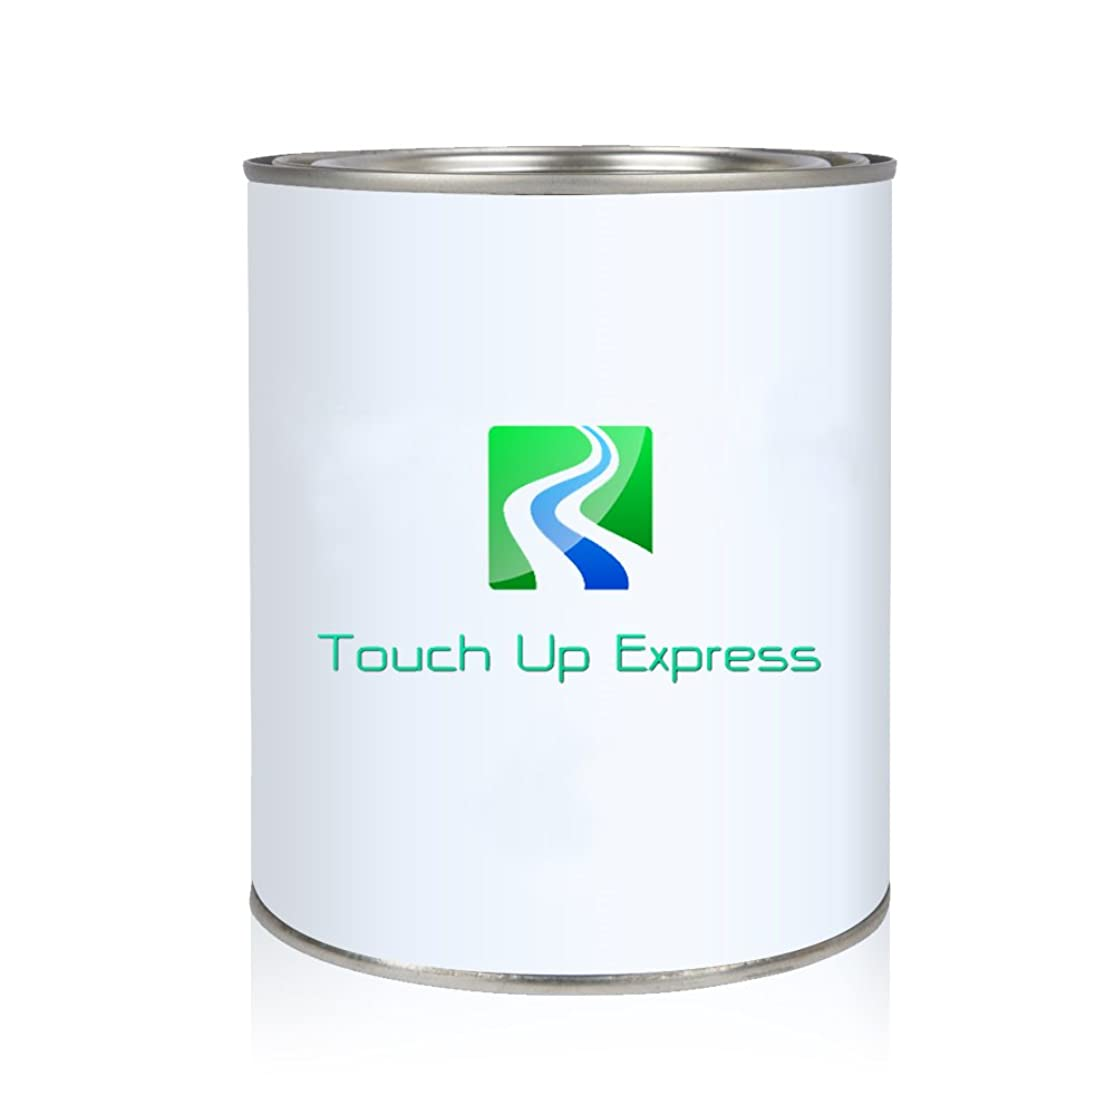 Touch Up Express Paint for 2001 Honda Accord RP31M Signet Silver Metallic Pint Basecoat Paint ygihgapq1